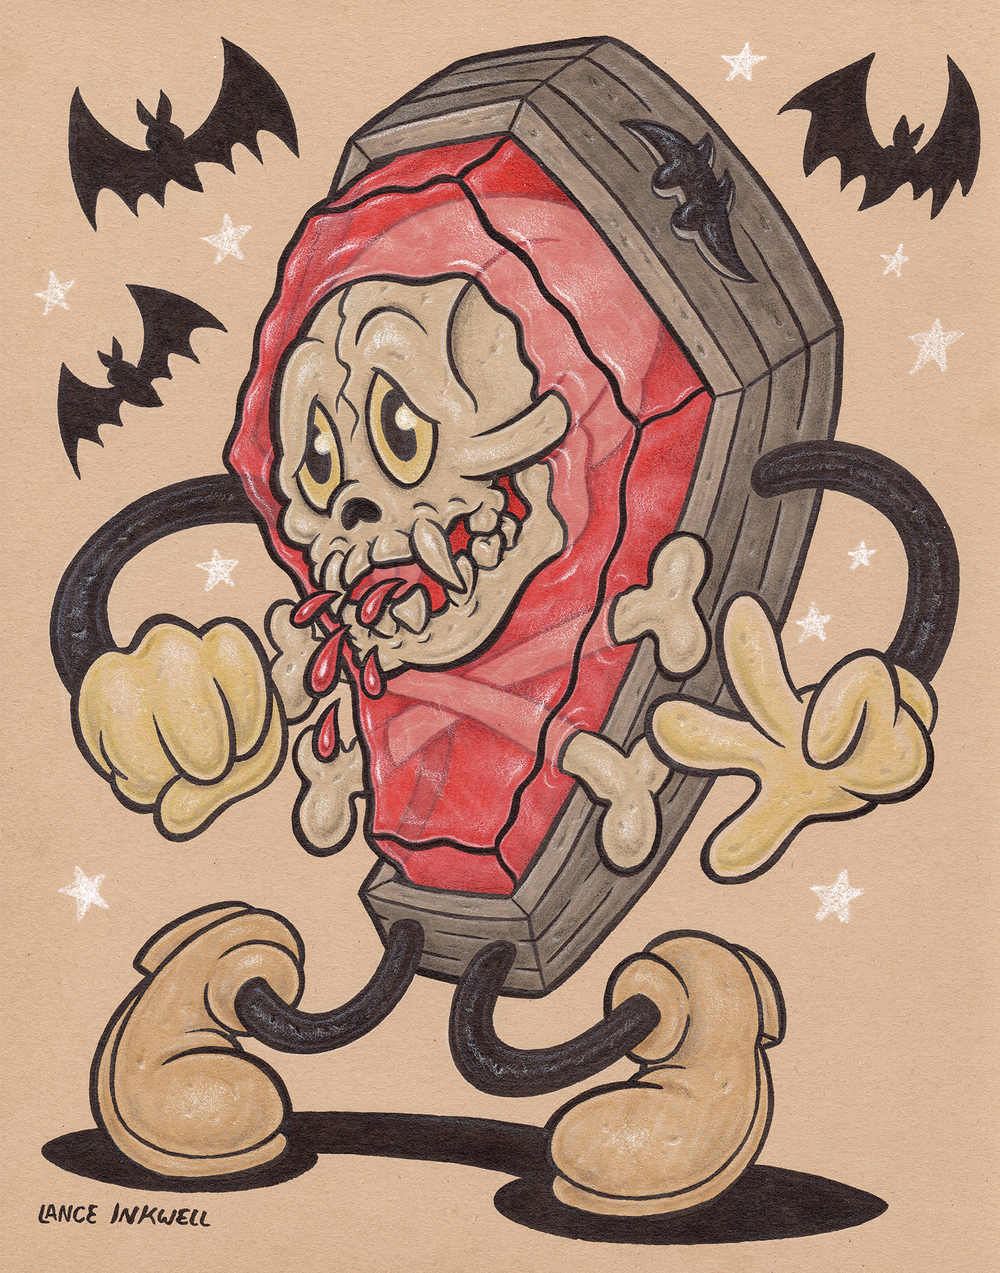 """Coffin Blood"" - 11""x14"" Ink, Marker, and Color Pencil on Toned Paper. $200  Call Abstract Denver to purchase- 1 (720) 937-9722"